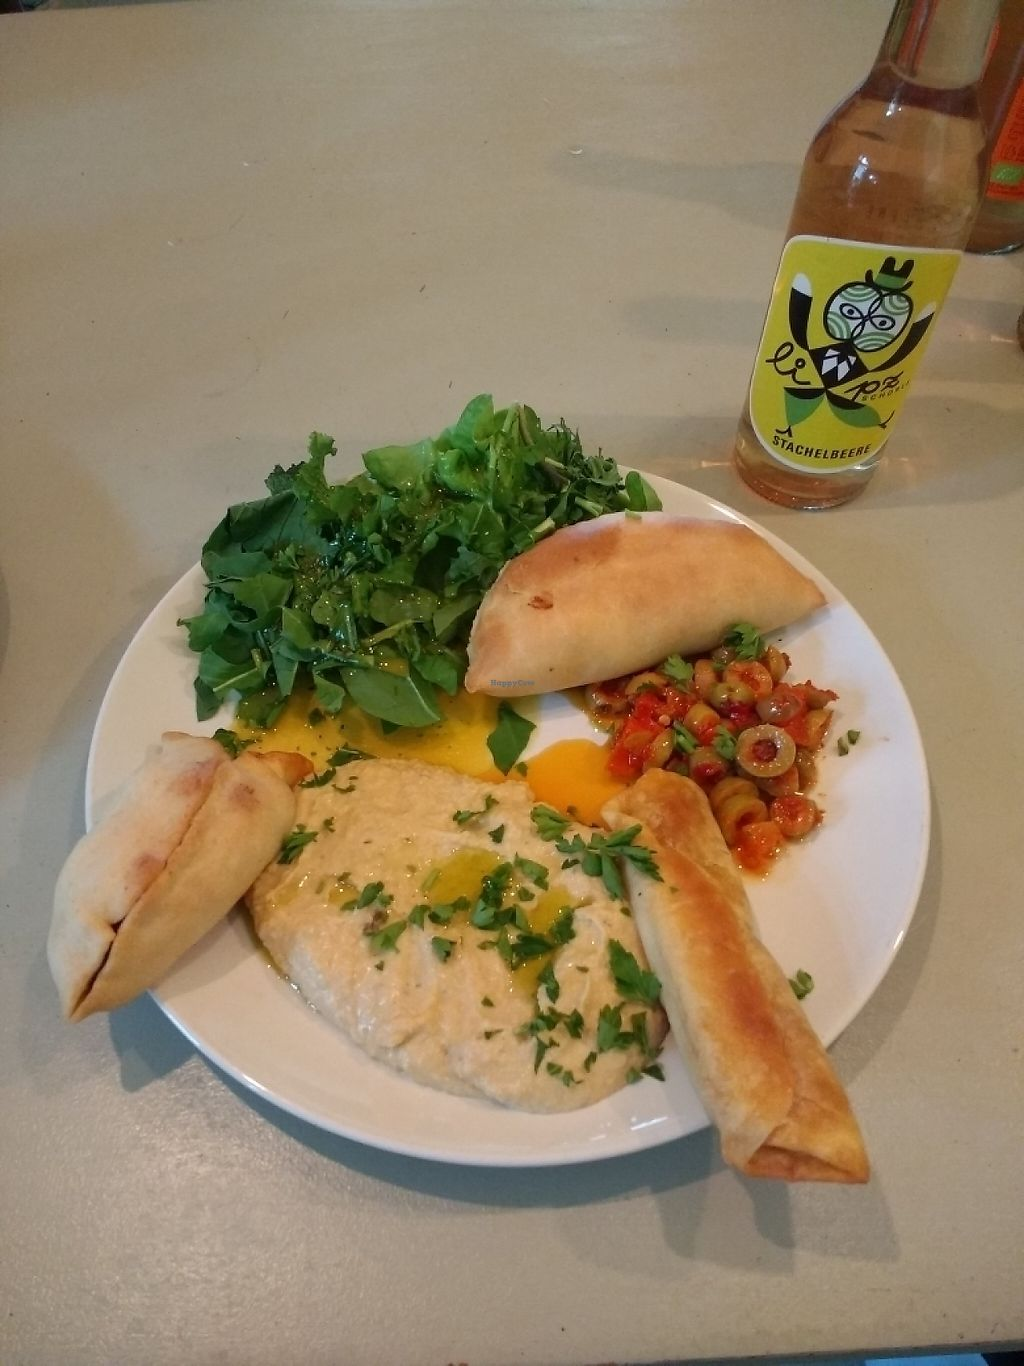 """Photo of CLOSED: Superfood  by <a href=""""/members/profile/Happymangoman"""">Happymangoman</a> <br/>syrian filled dough, hummus, olives, salad <br/> May 4, 2017  - <a href='/contact/abuse/image/77966/255523'>Report</a>"""